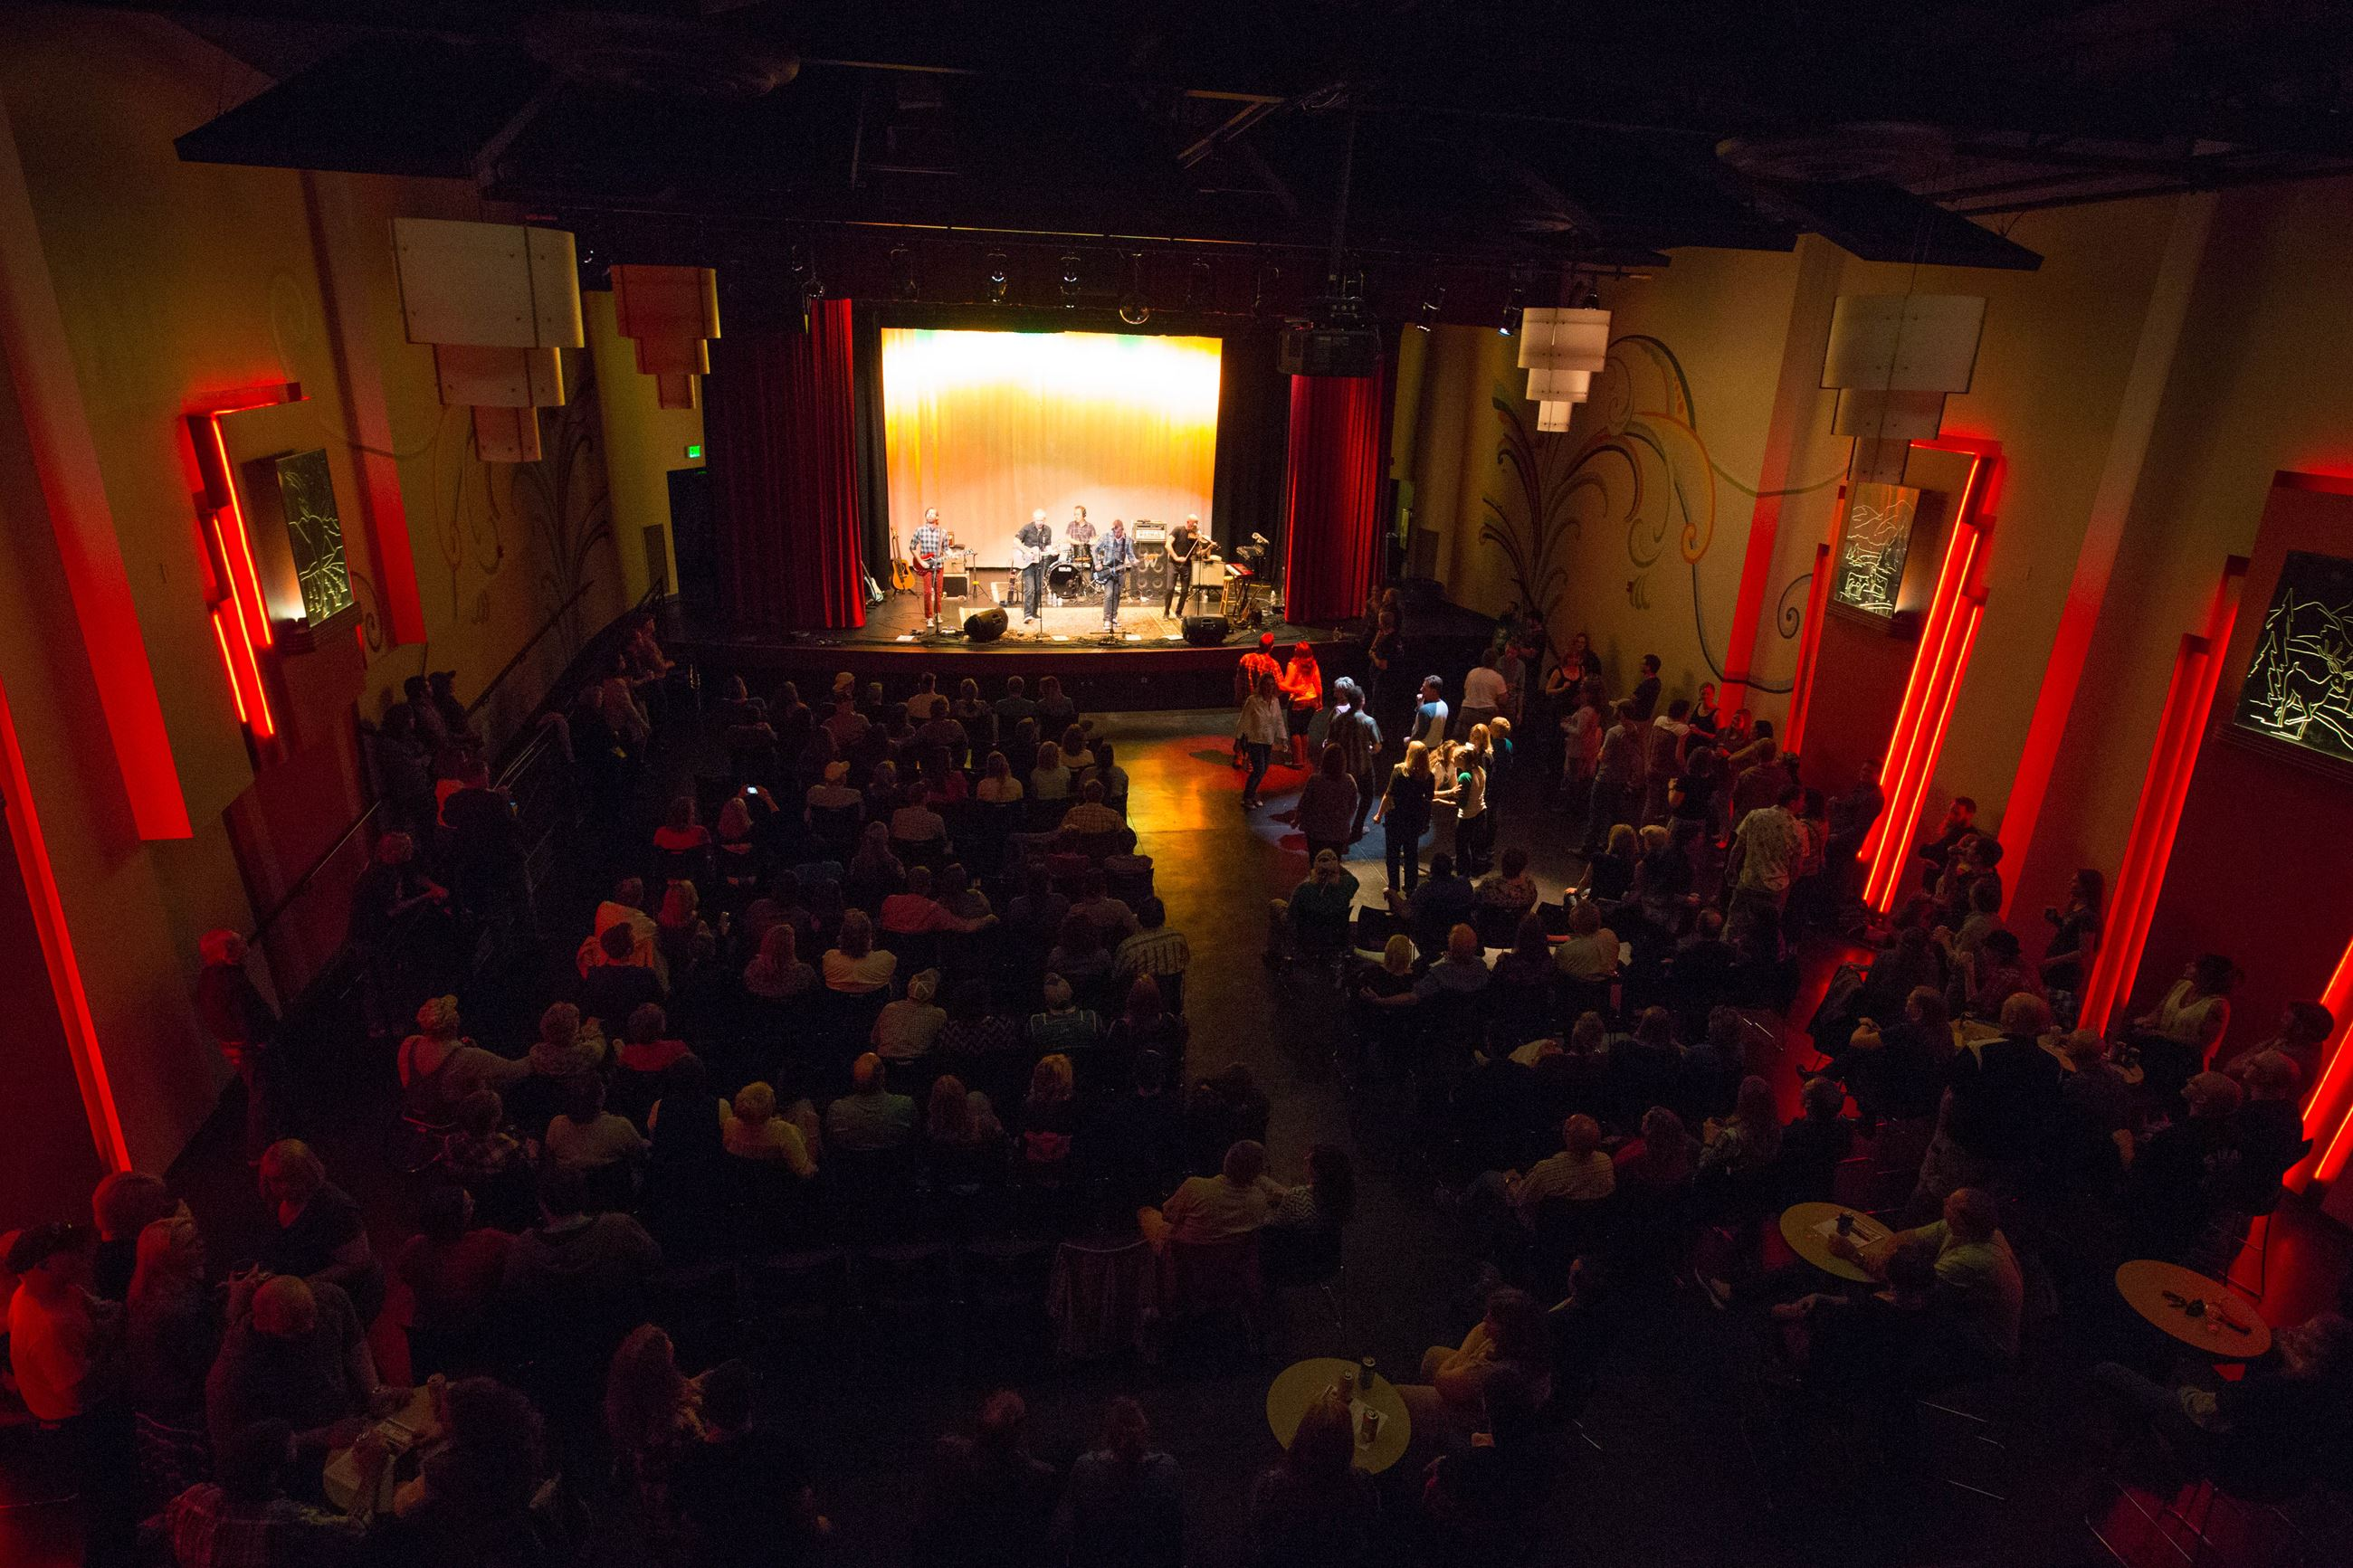 Concert at the Ute Theater in Downtown Rifle